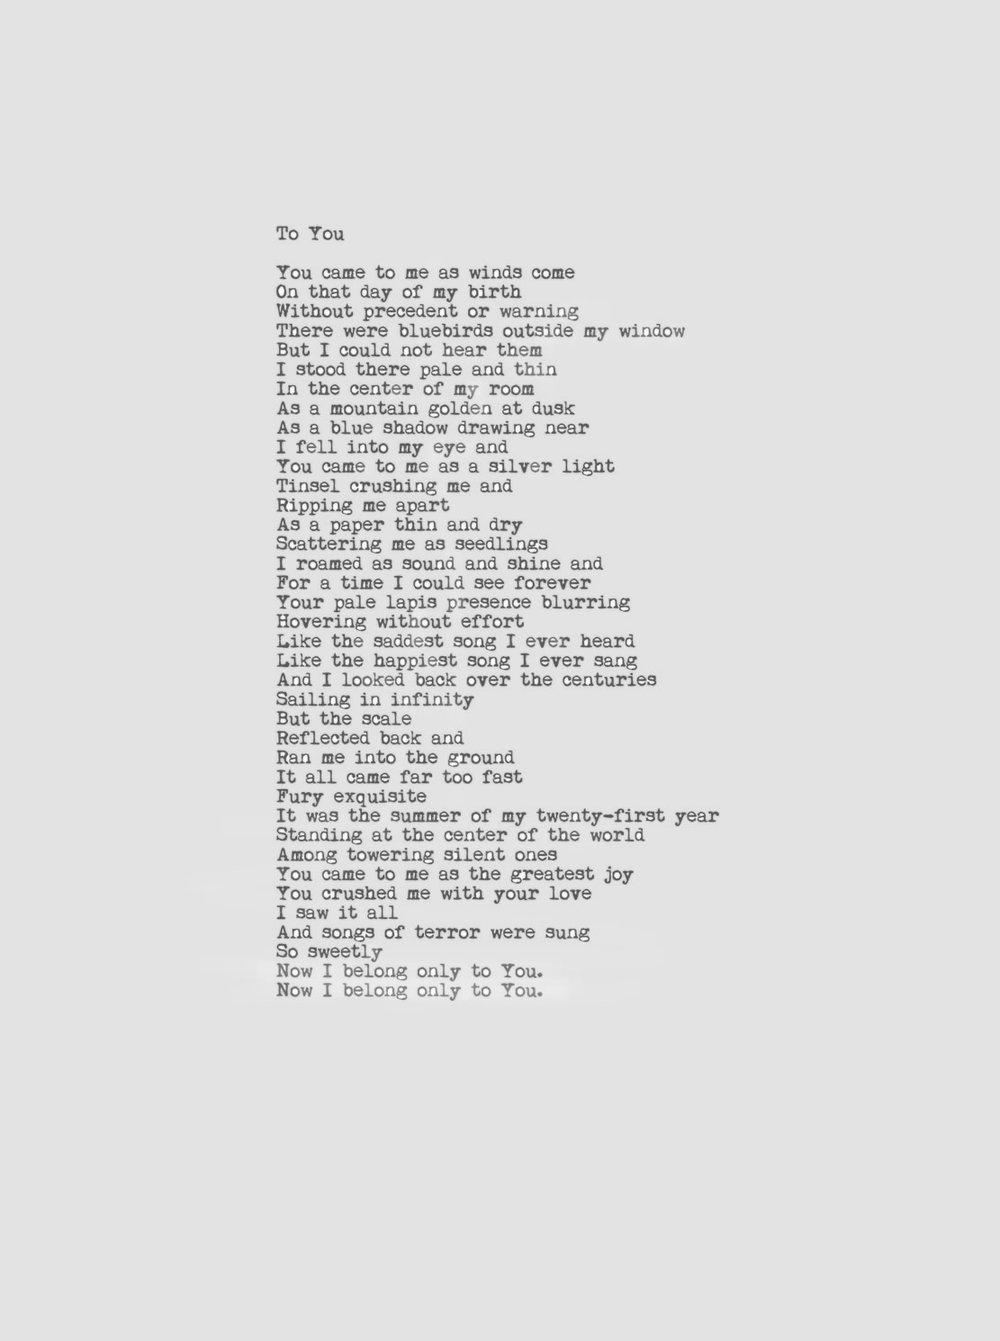 to you poem sm.jpg